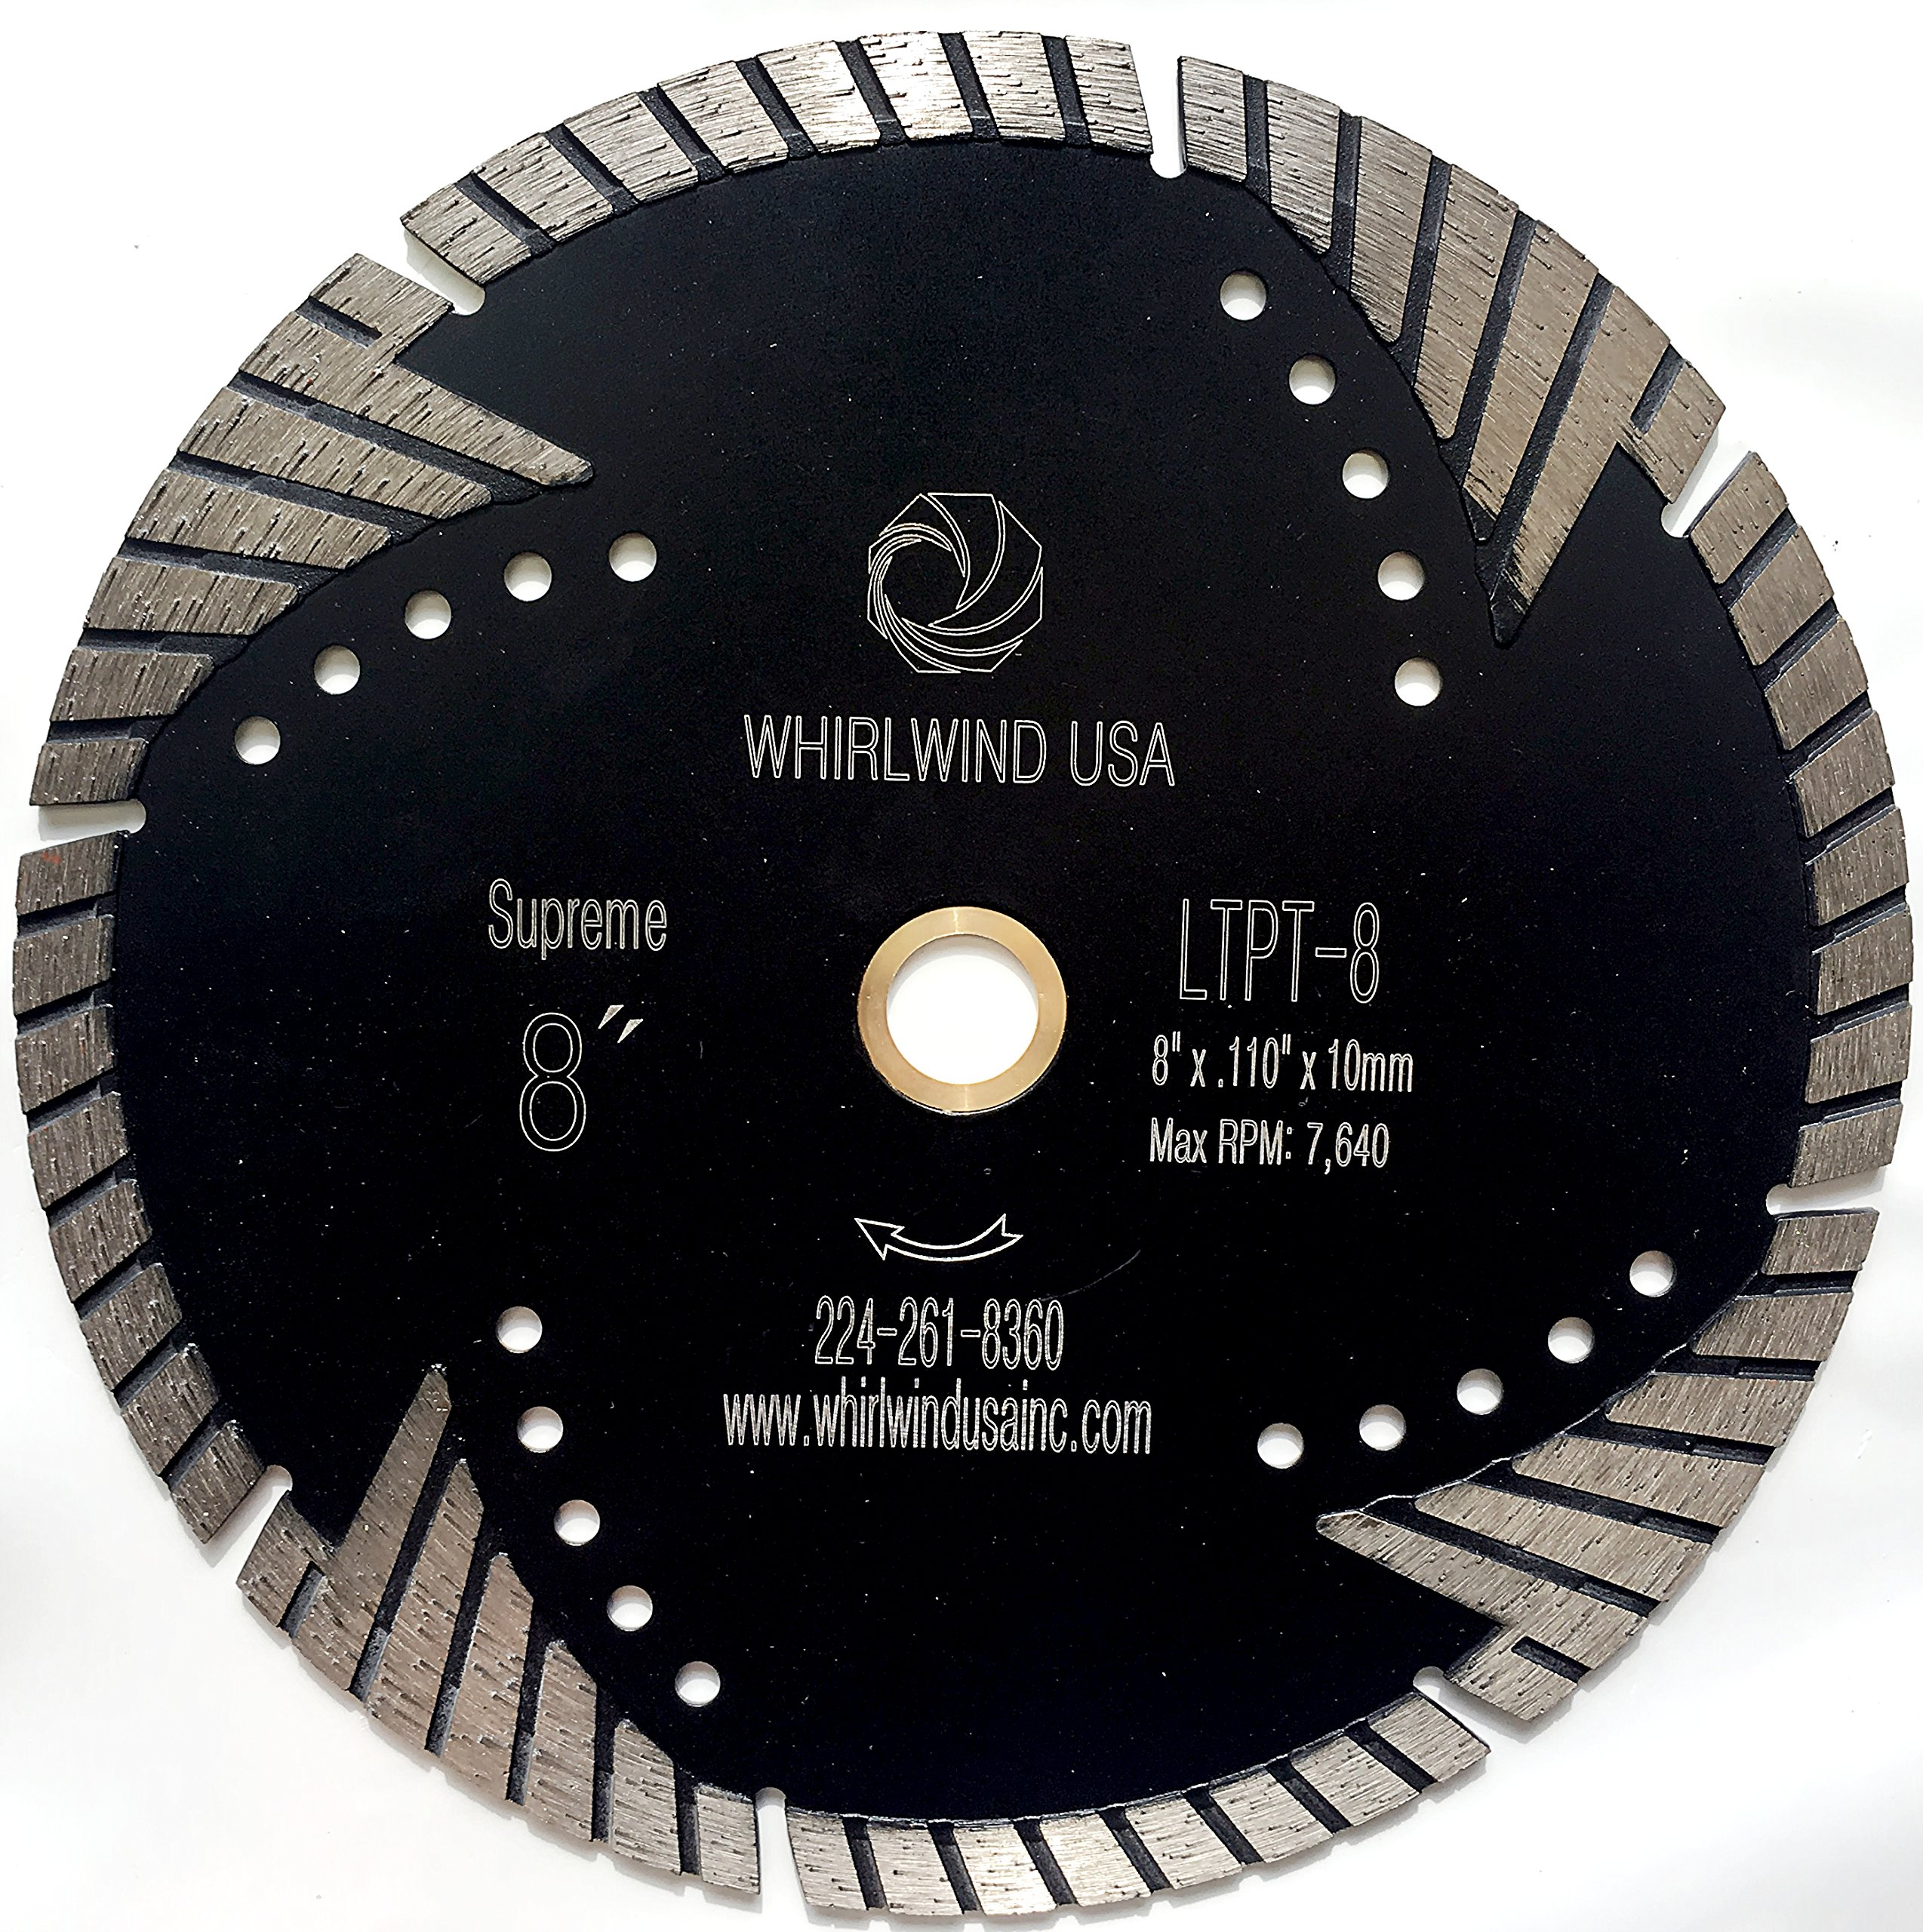 Whirlwind USA LTPT 8 inch Dry or Wet Cutting General Purpose Power Saw Protected Continue Turbo Diamond Blades for Granite Stone Concrete (Factory Direct Sale) (8'')